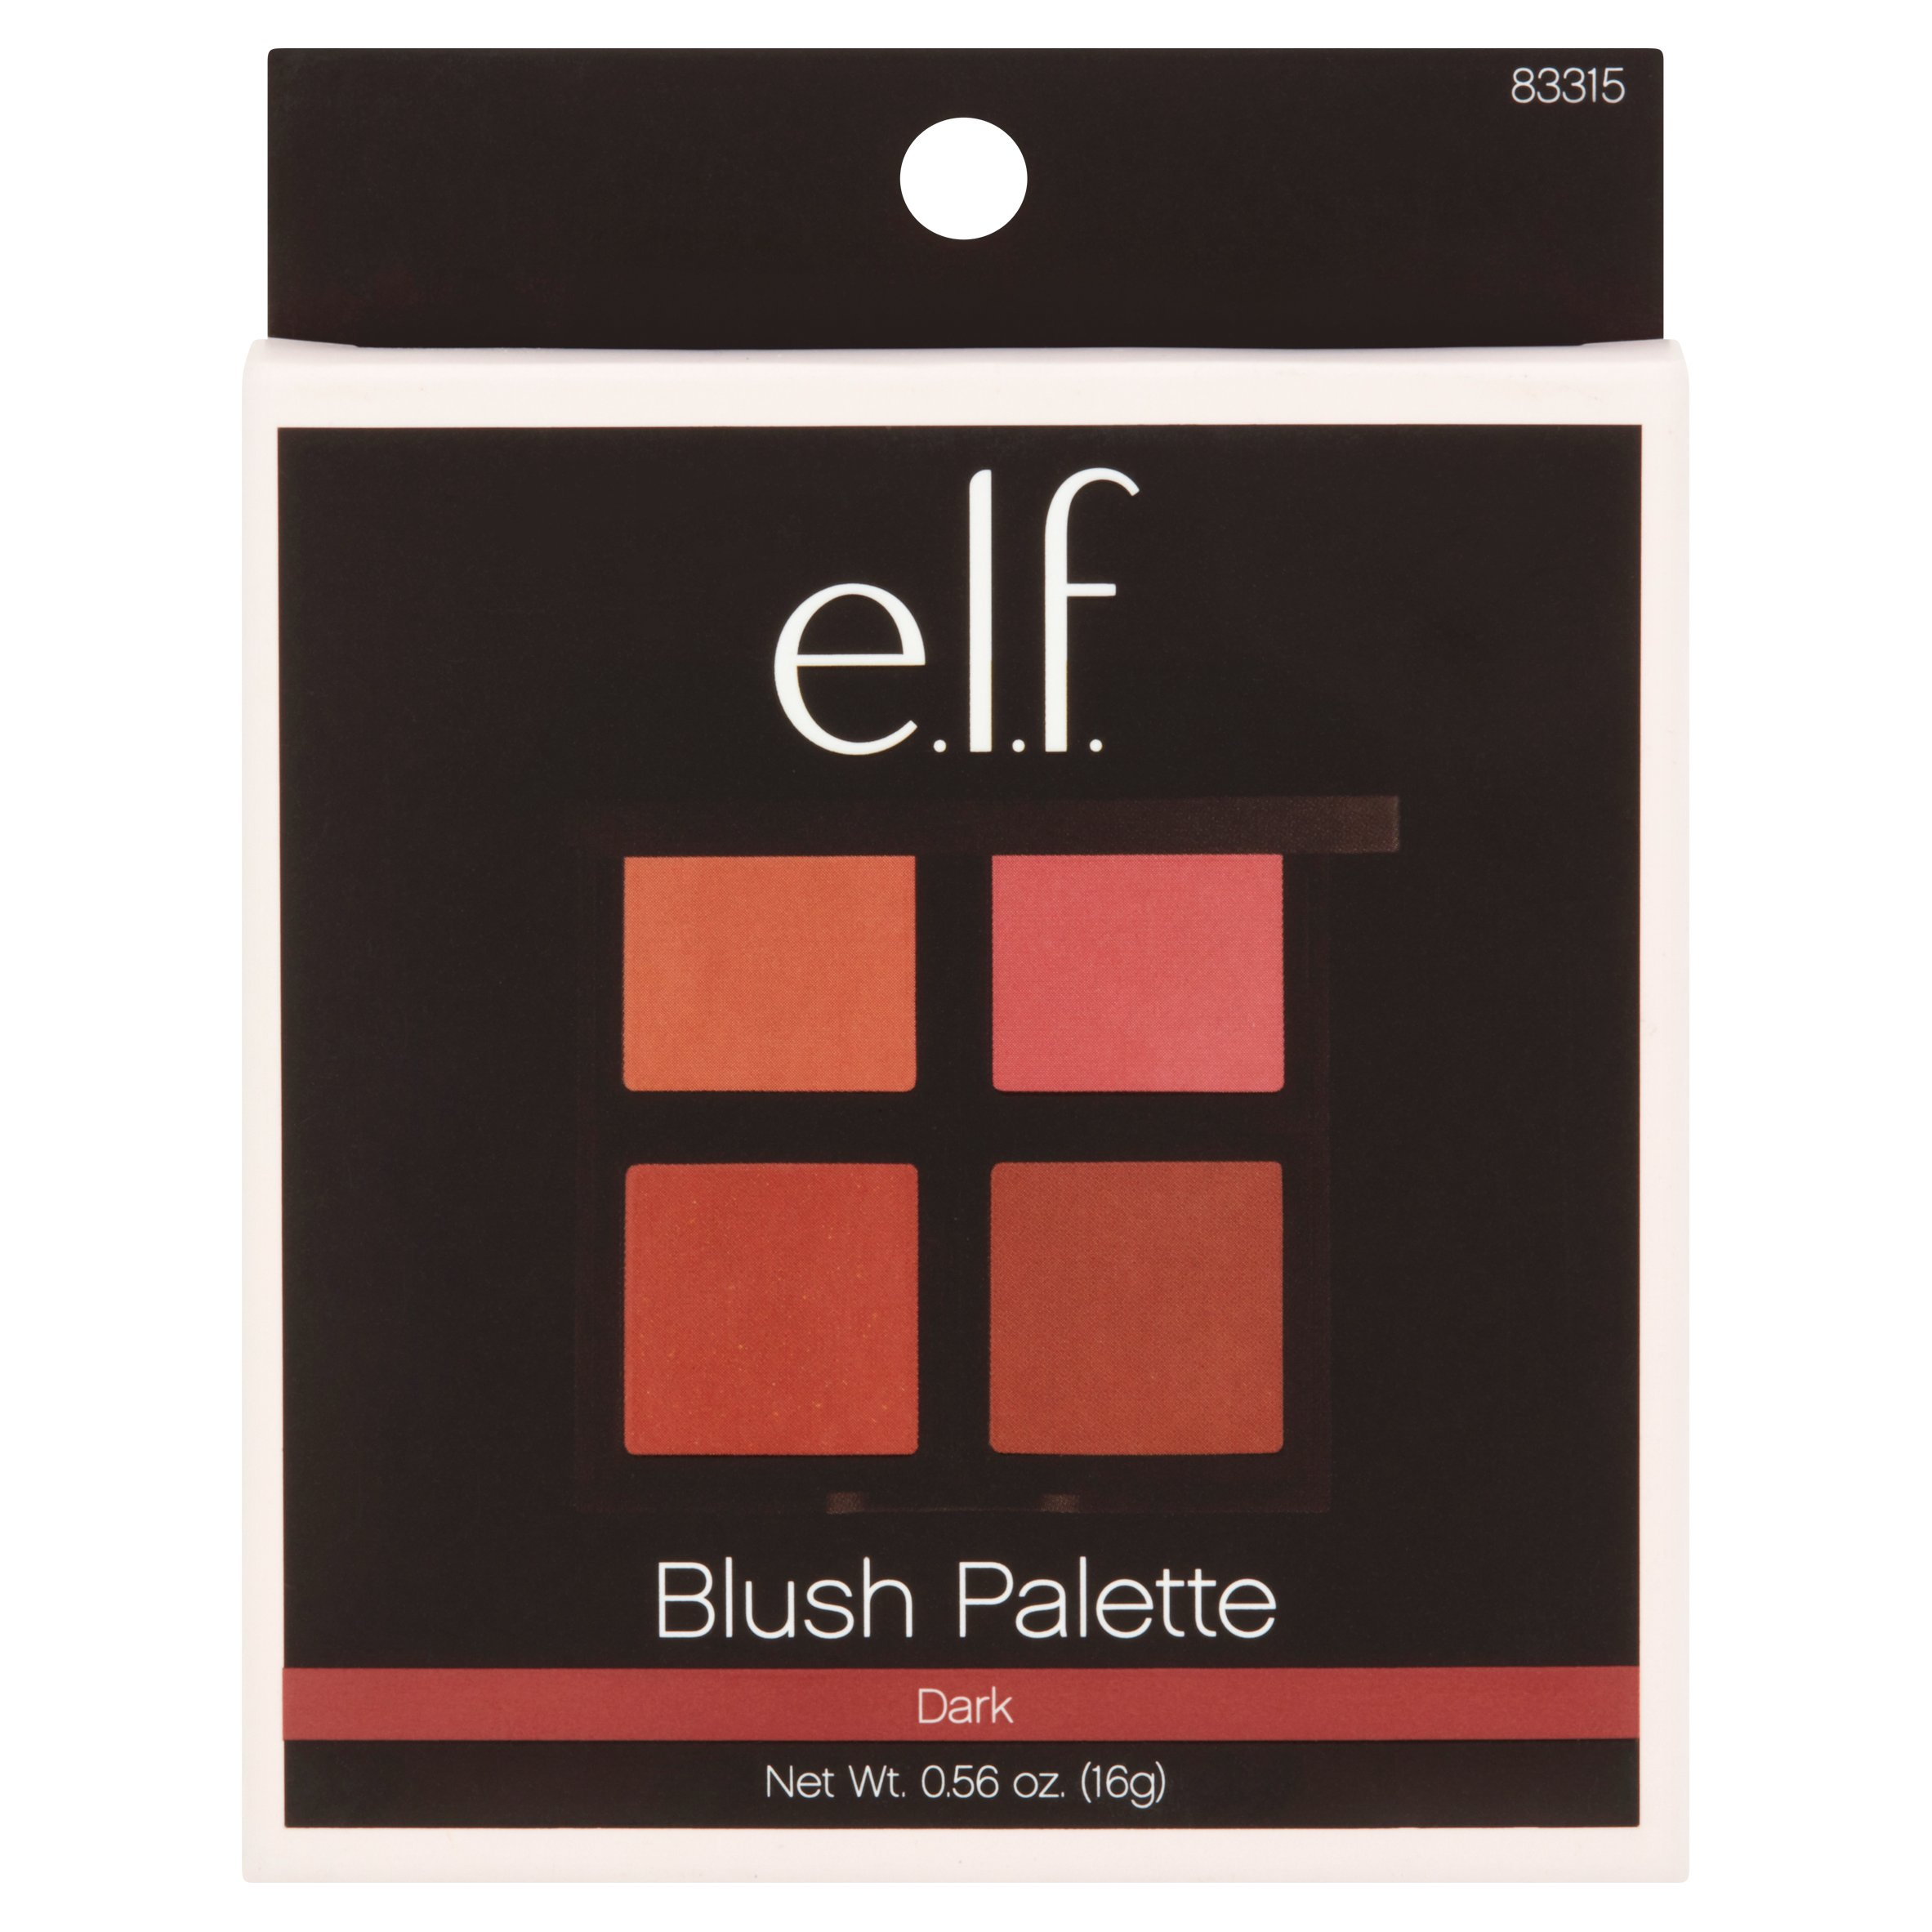 e.l.f. Blush Palette, Dark, 0.14 oz